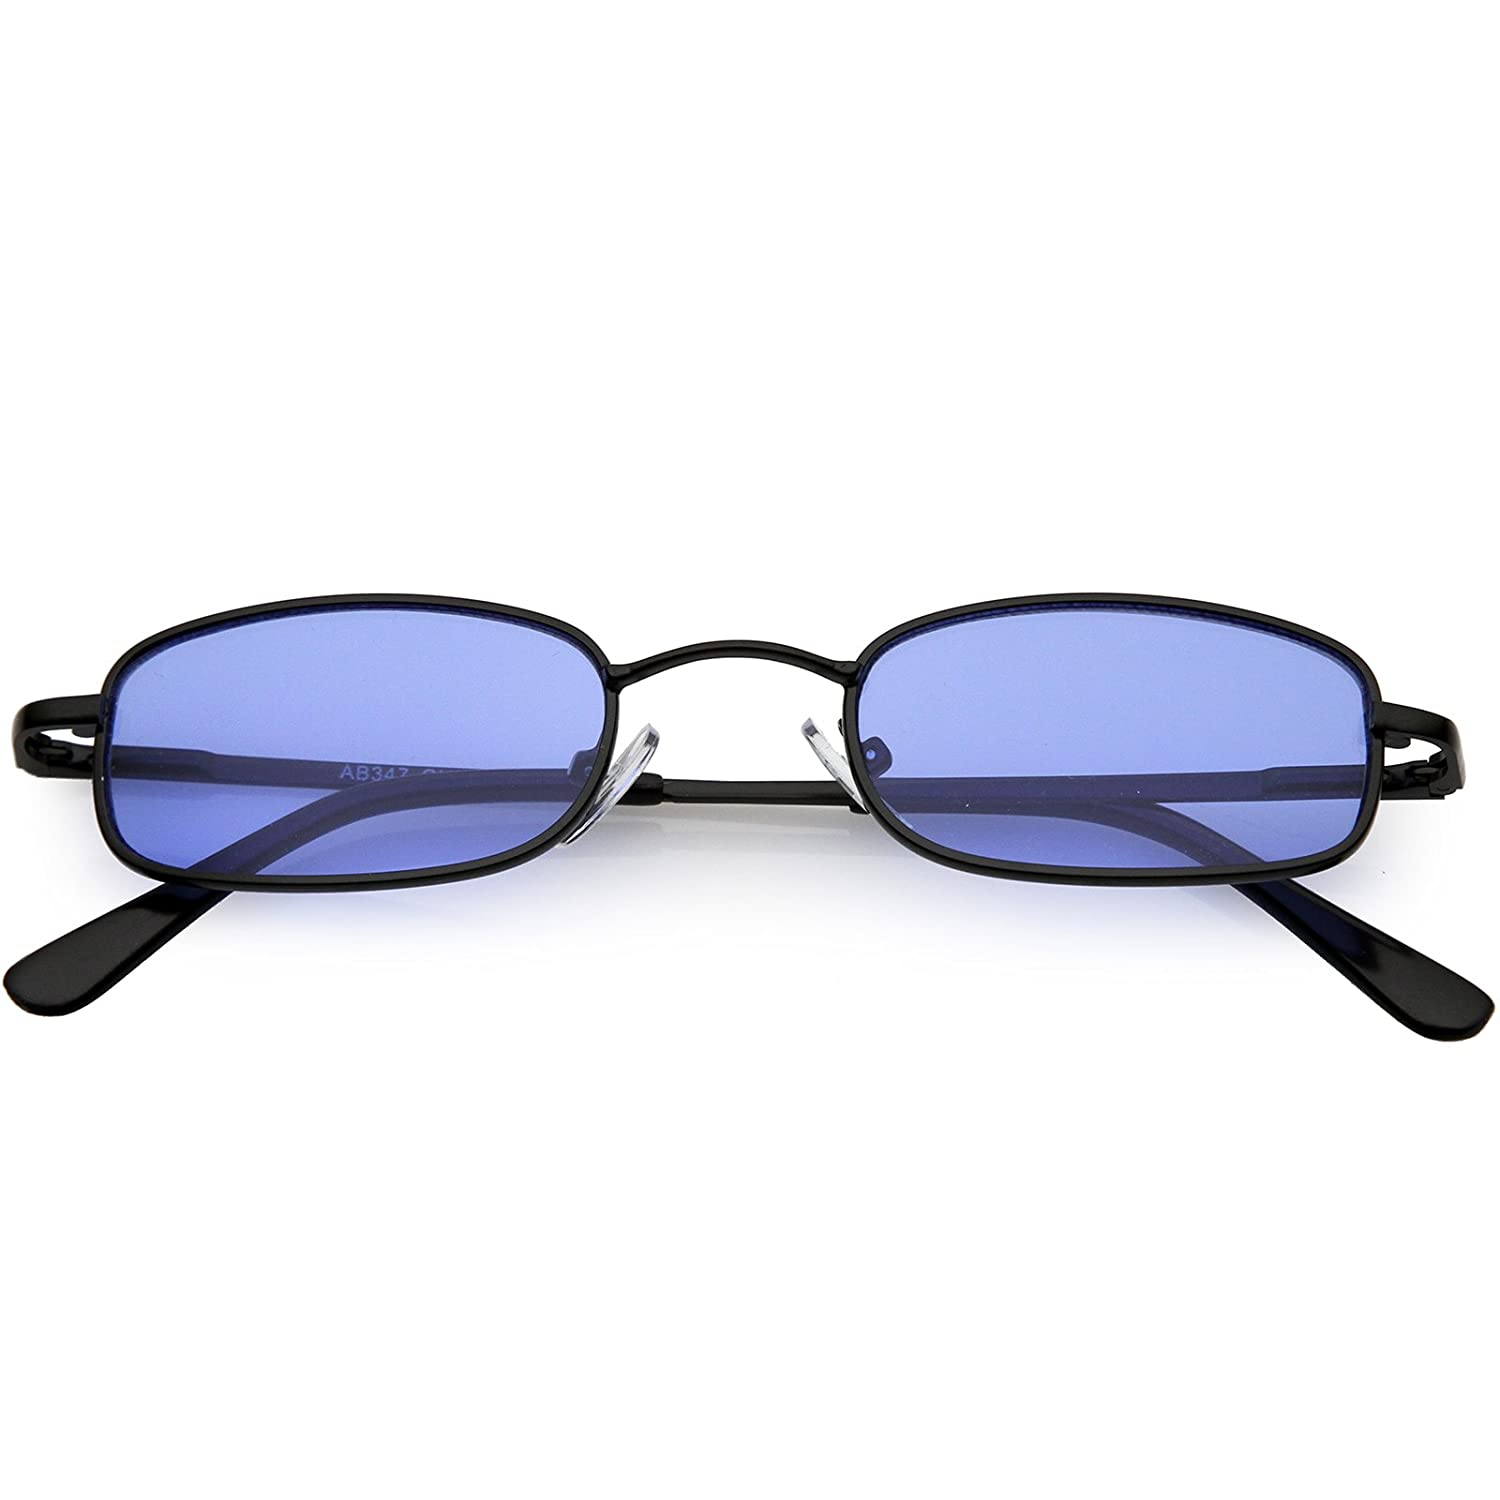 85ab2469b8bb Amazon.com  sunglassLA - 90 s Small Rectangle Sunglasses For Women Men  Color Tinted Lens Metal Slim Arms 45mm (Black Blue)  Clothing